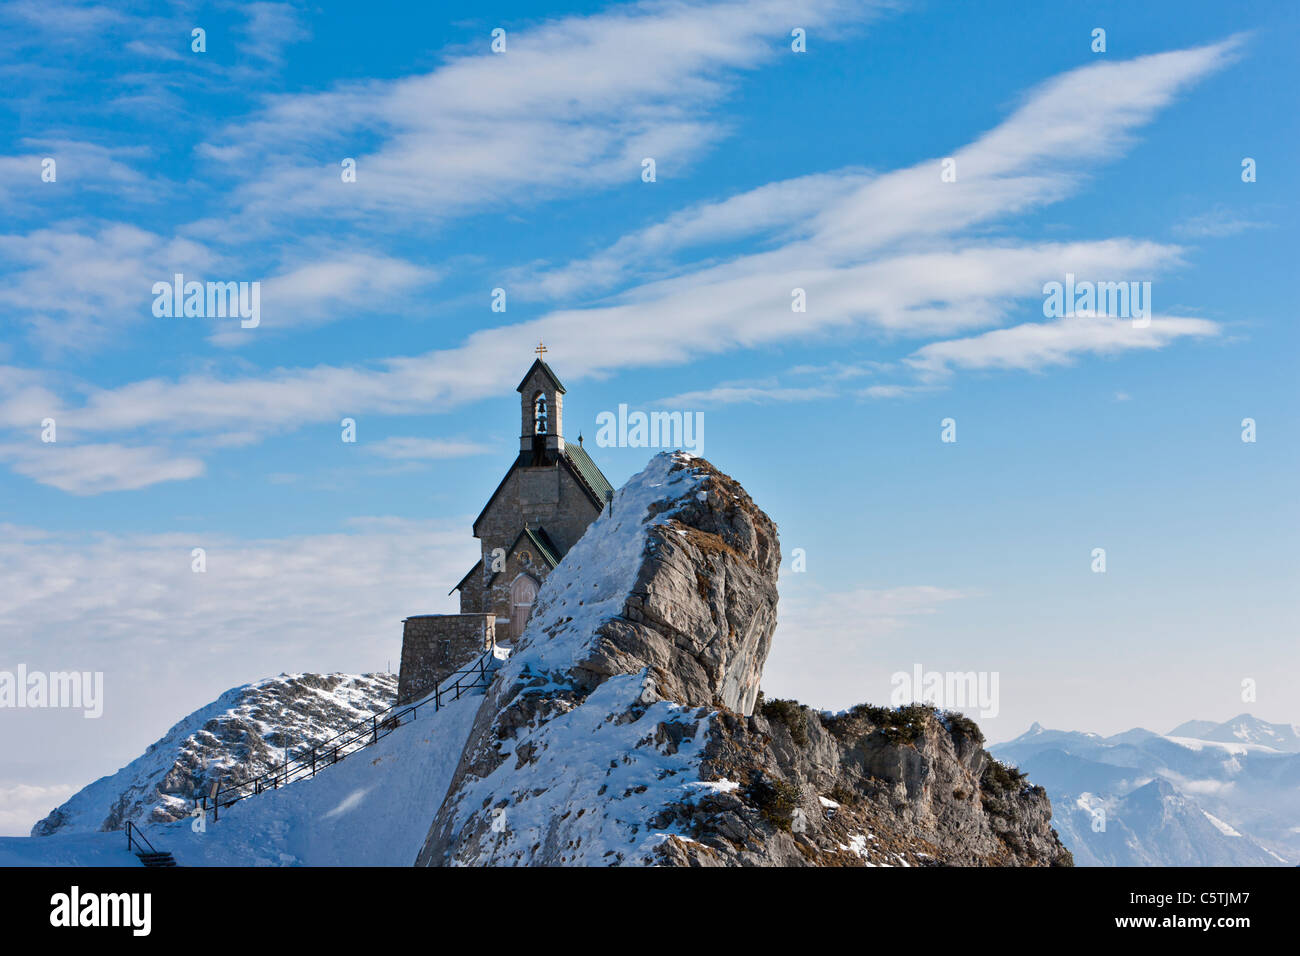 South Germany, Upper Bavaria, View of small church on Wendelstein mountain - Stock Image